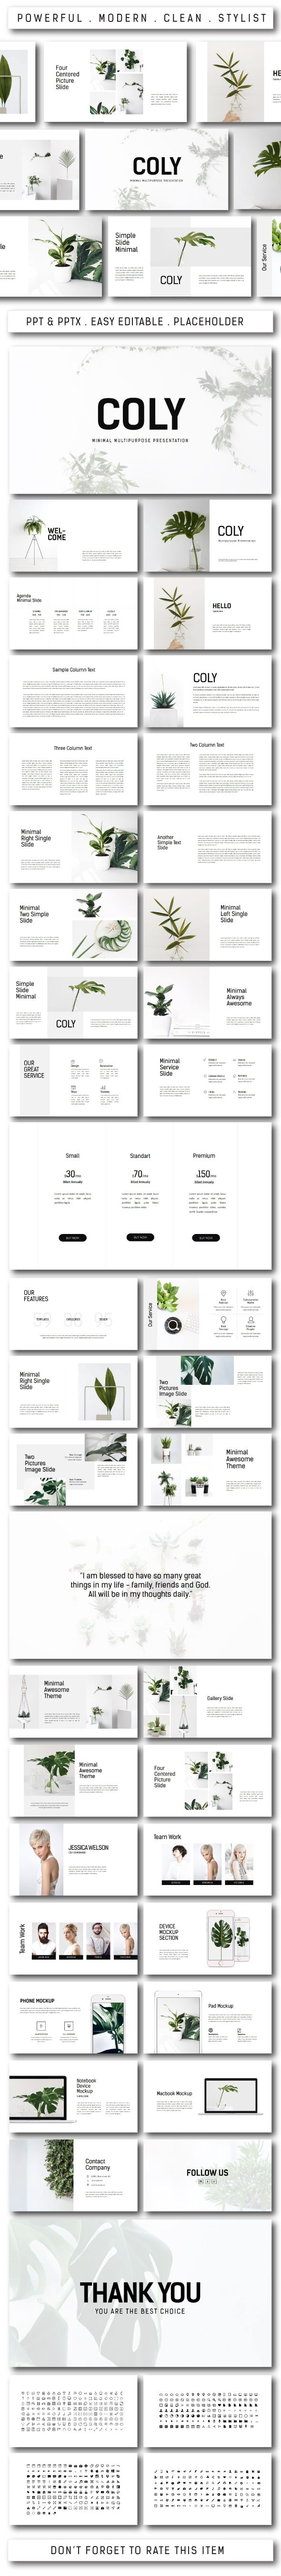 Coly Multipurpose Powerpoint PowerPoint Templates Presentation